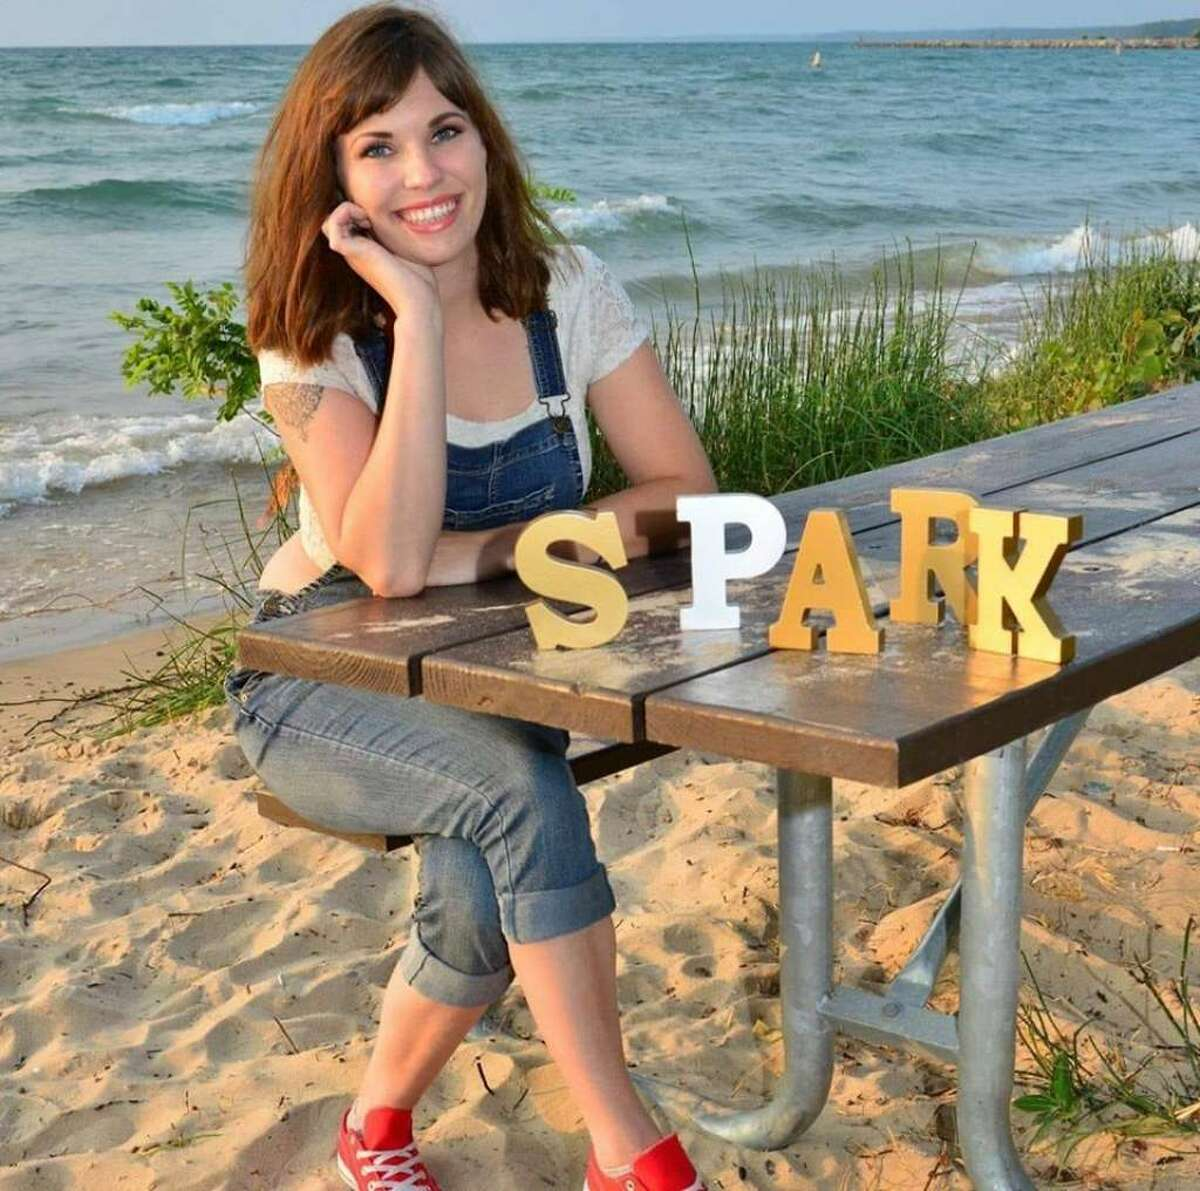 Abagail McKiernan, founder of Traverse City nonprofit Spark in the Dark, has extended her organization's reach into Manistee and Mt. Pleasant.